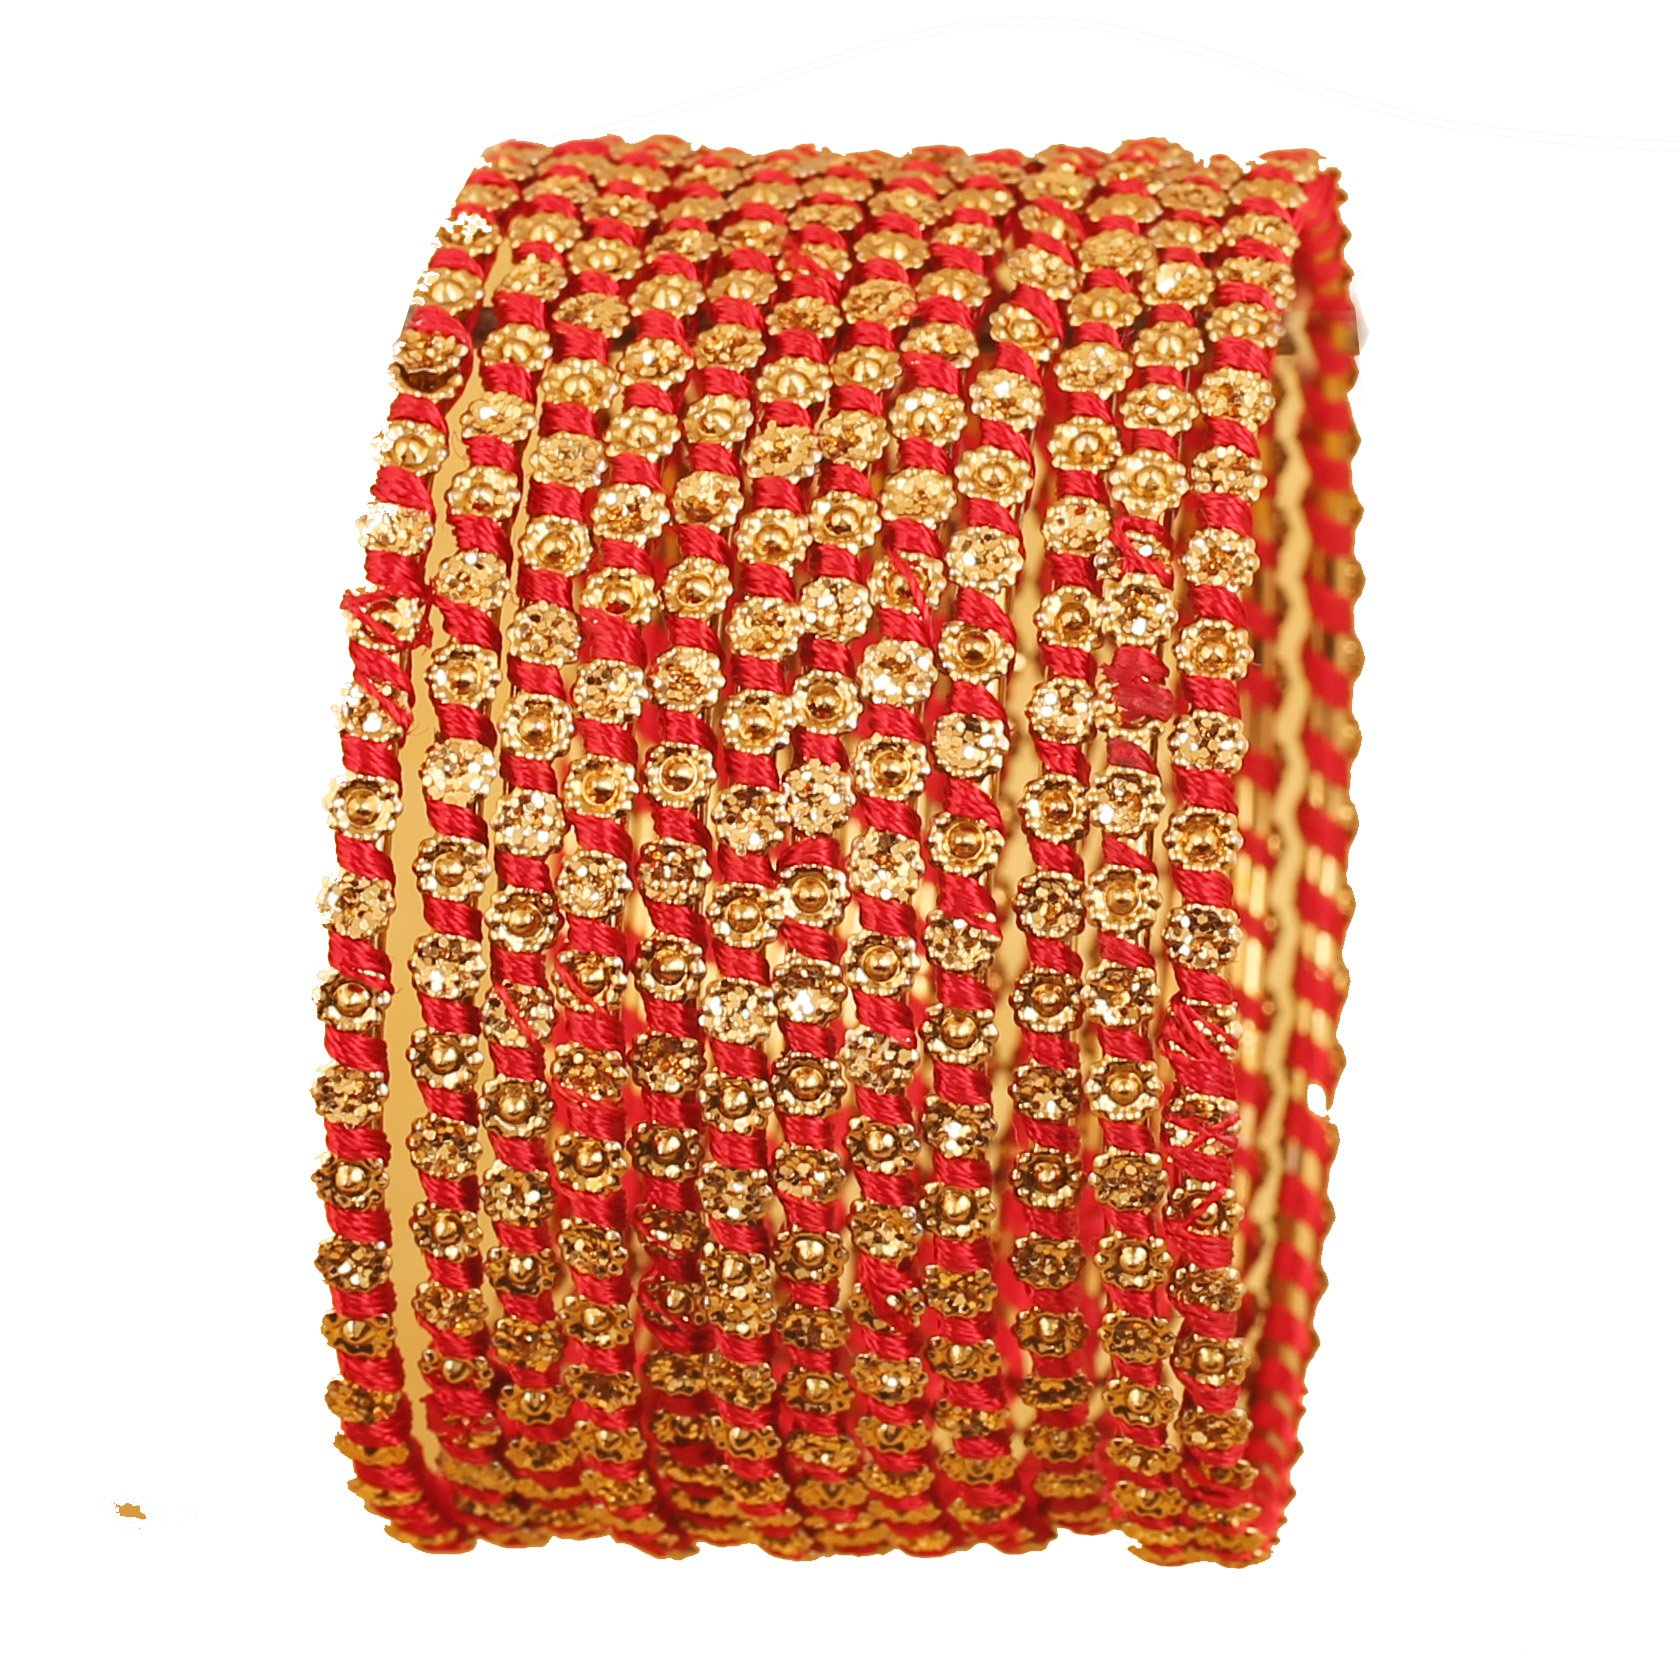 New! Touchstone Silk Thread Bangle Collection. Indian Bollywood Hand Woven Hot Red Silk Thread Fine Grain Work Charming Look Designer Bangle Bracelets. Set of 12 in Antique Gold Tone. for Women.